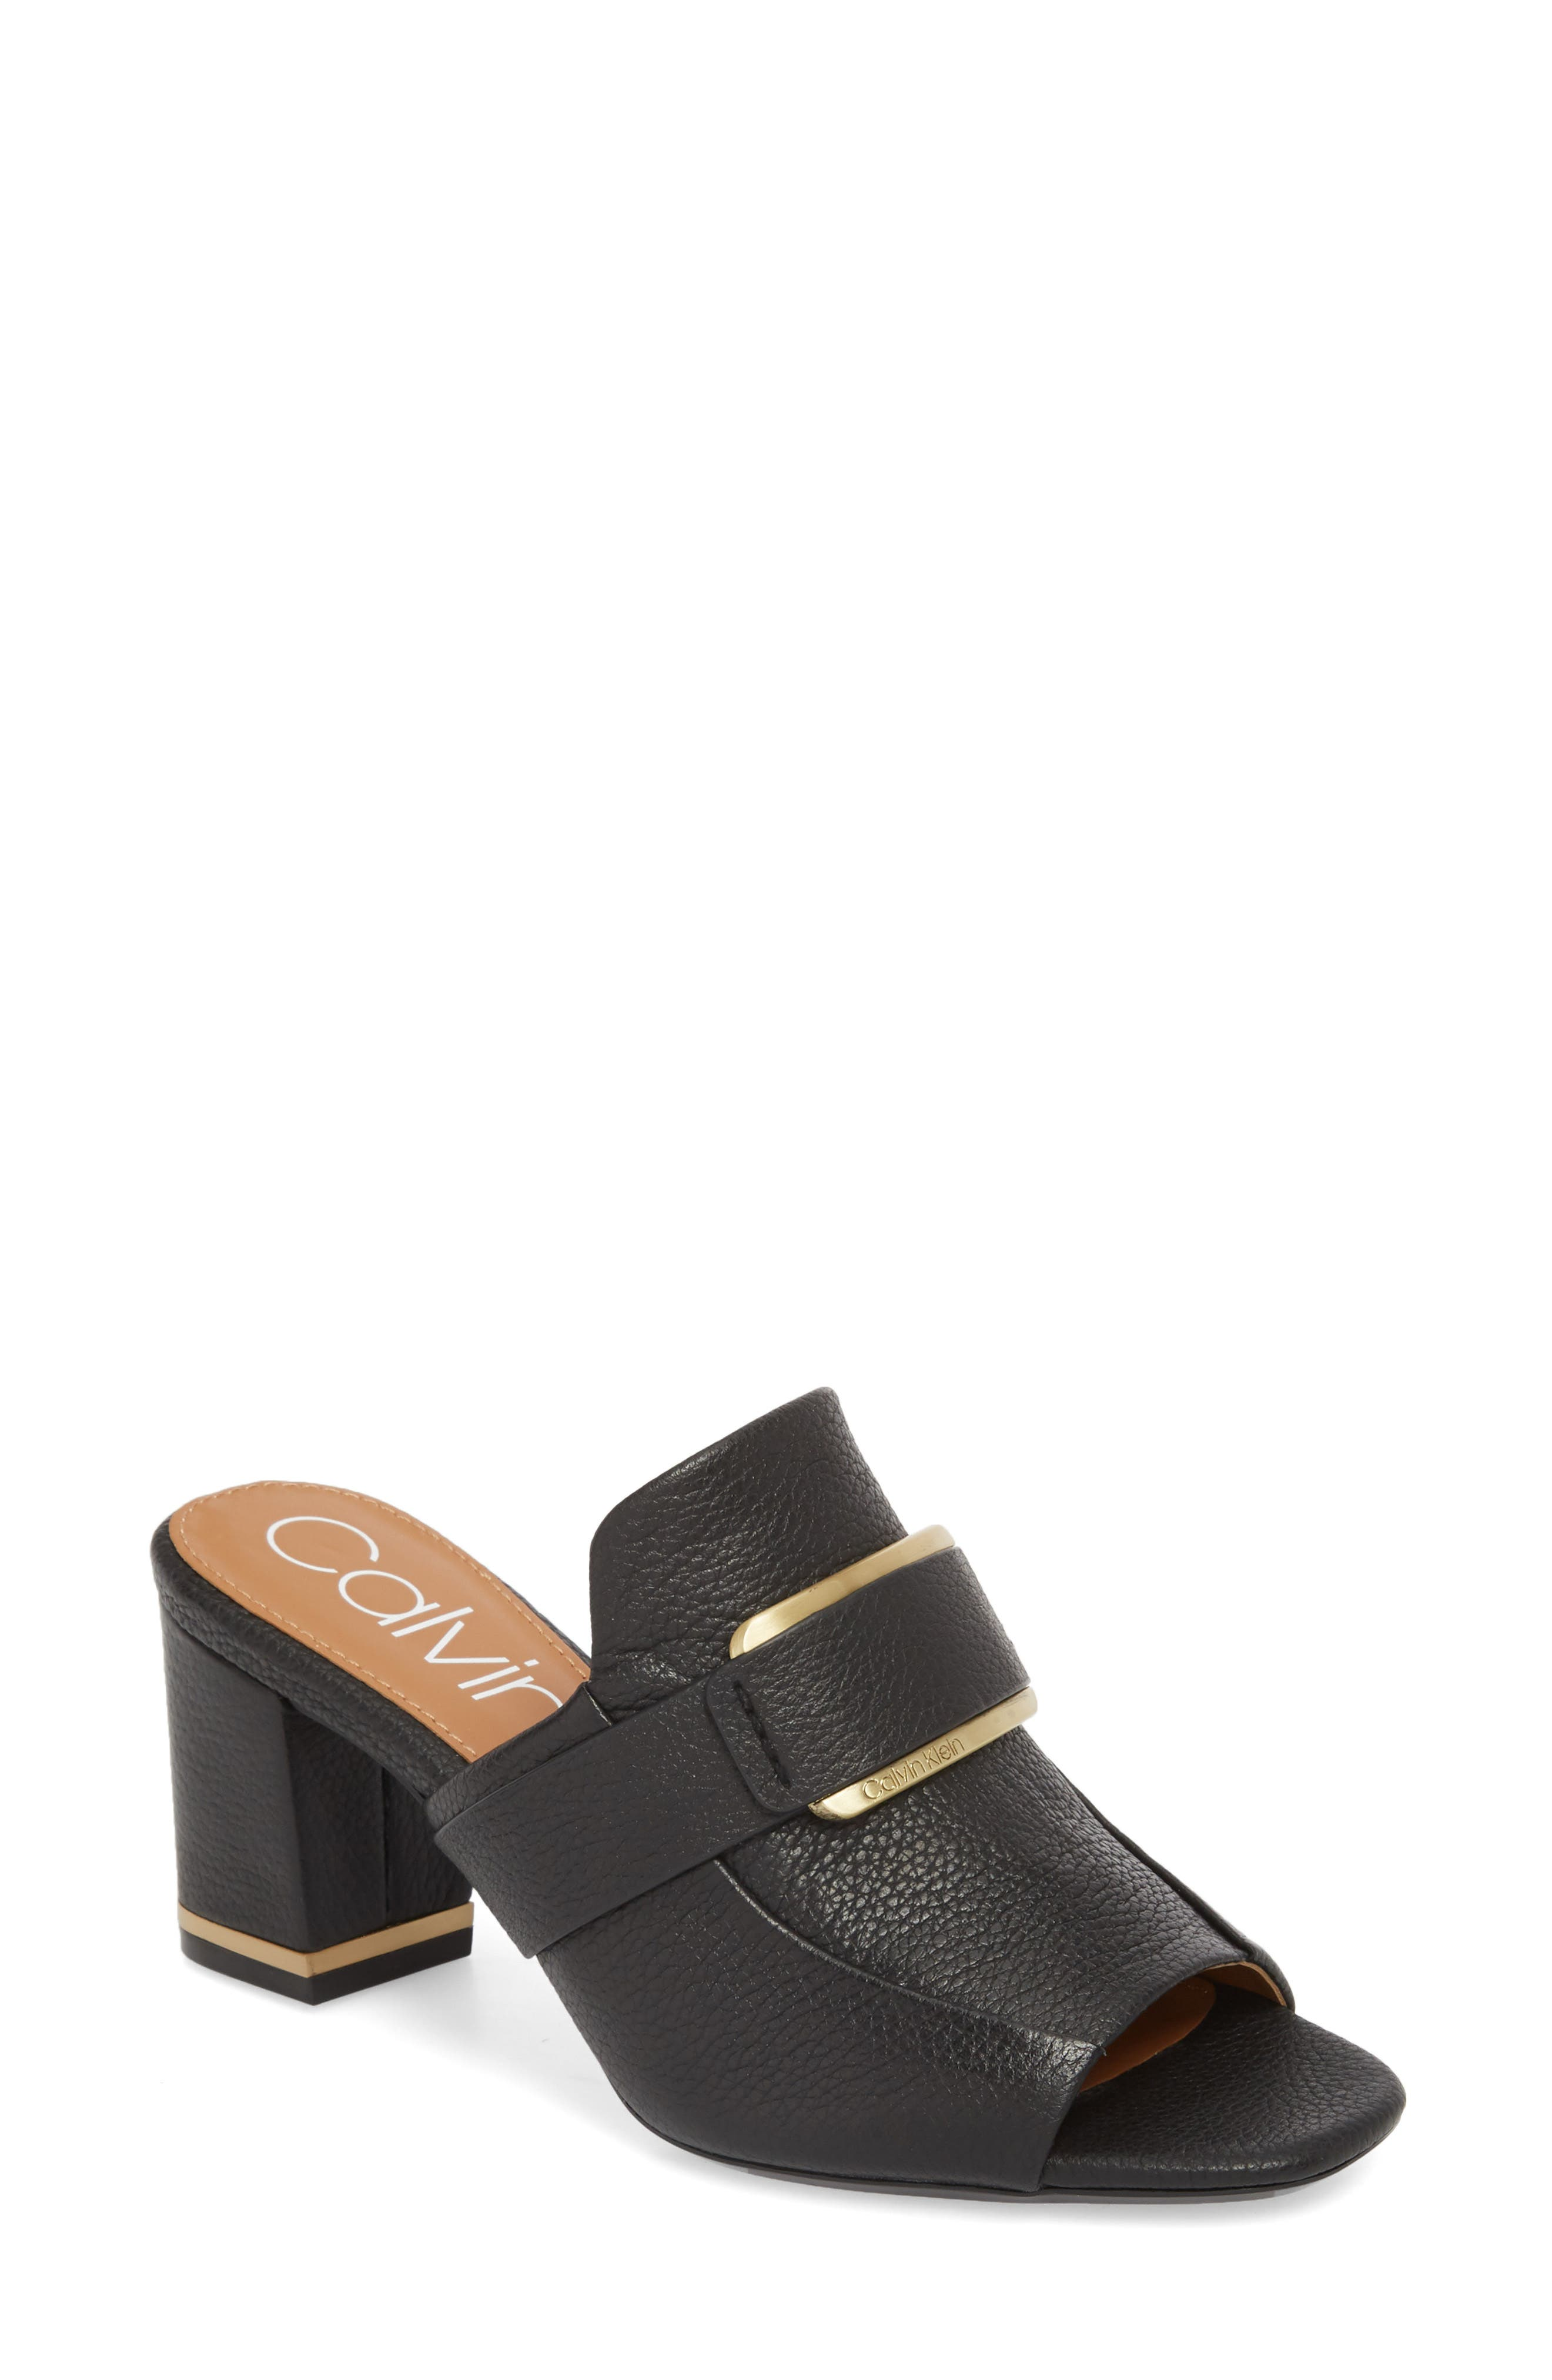 Corinne Sandal,                         Main,                         color, BLACK LEATHER